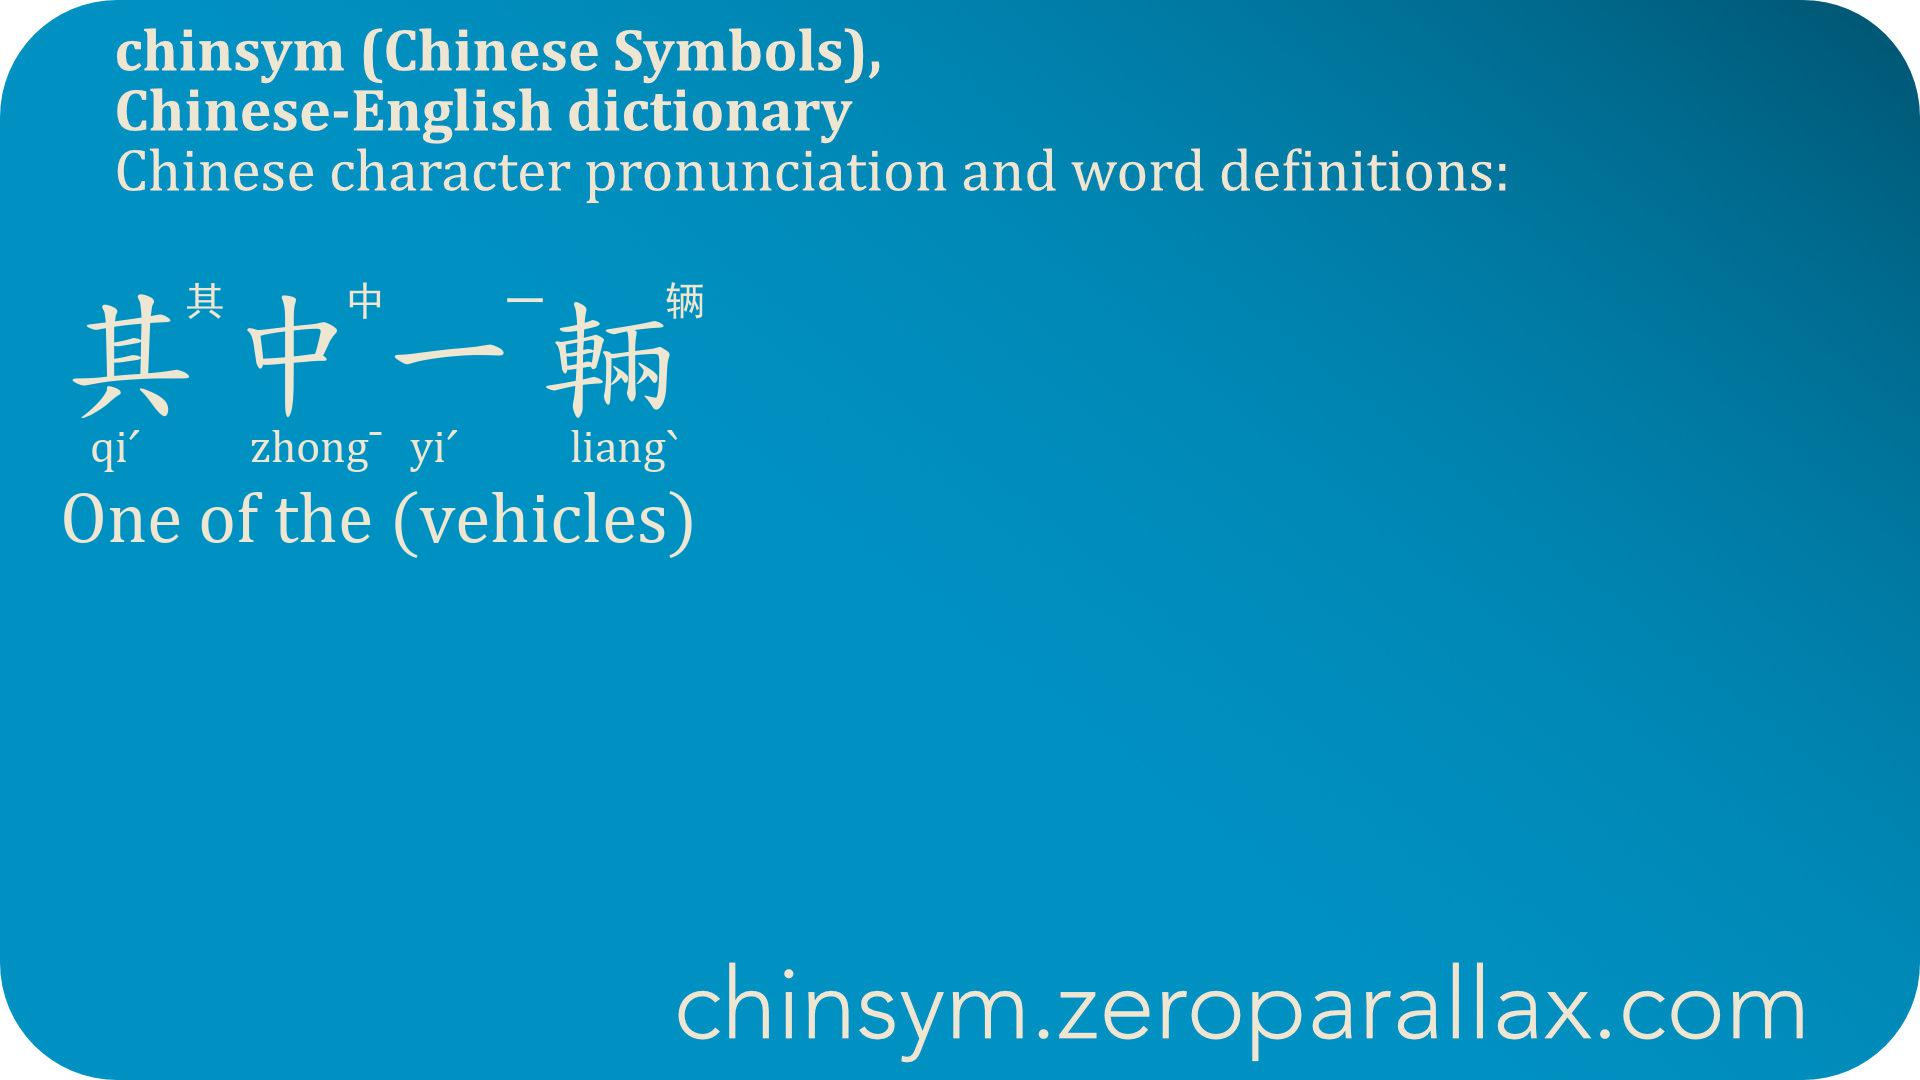 其中一輛  (qiˊ zhong¯ yiˊ liangˋ) 其中一辆 : One of the (vehicles). chinsym.zeroparallax.com